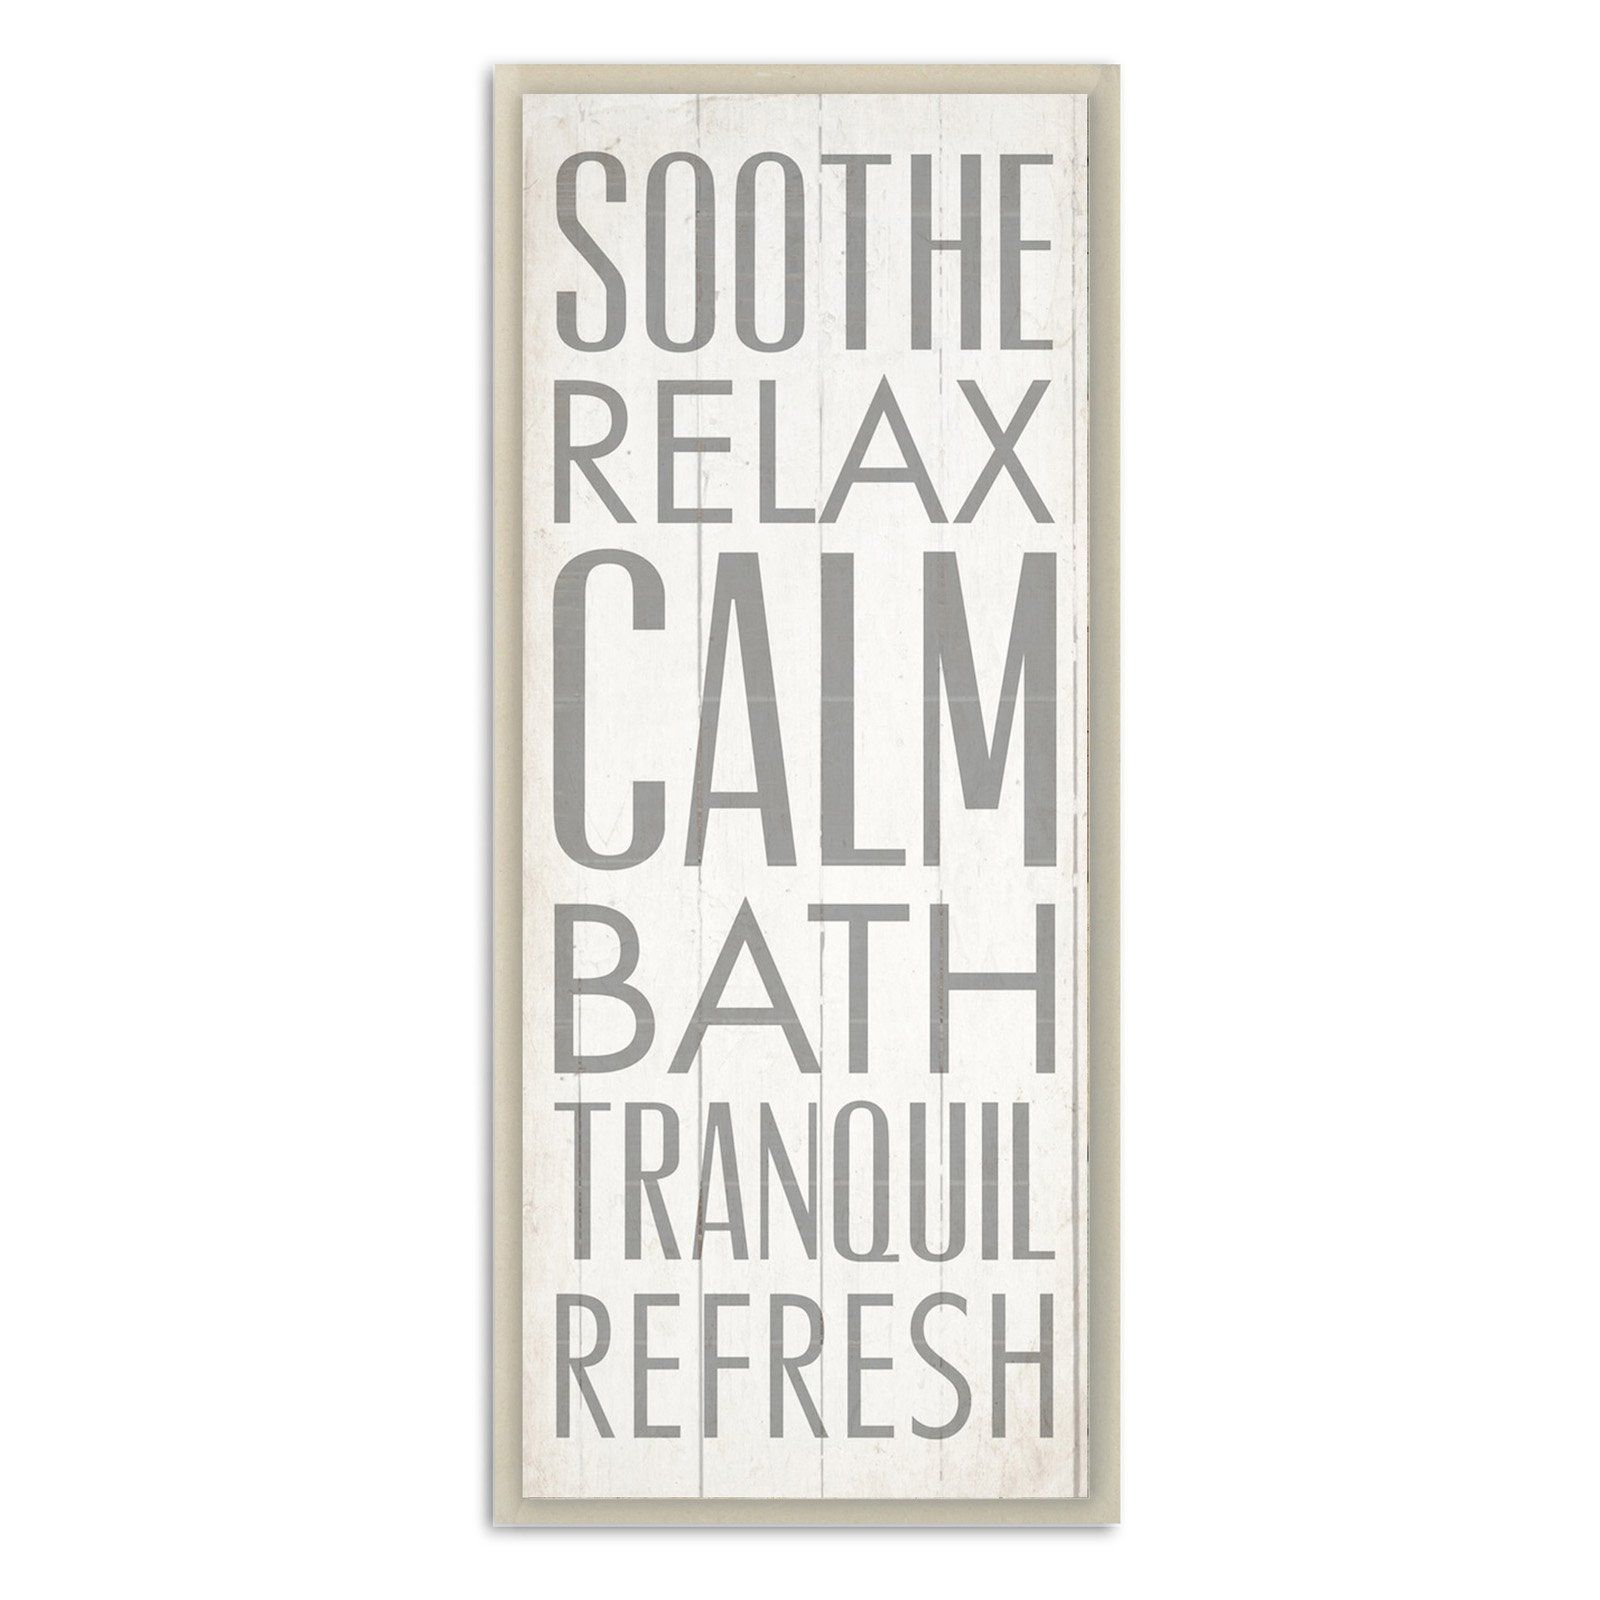 Soothe Calm Relax Bath Bathroom Wall Plaque - WRP-1067_WD_7X17